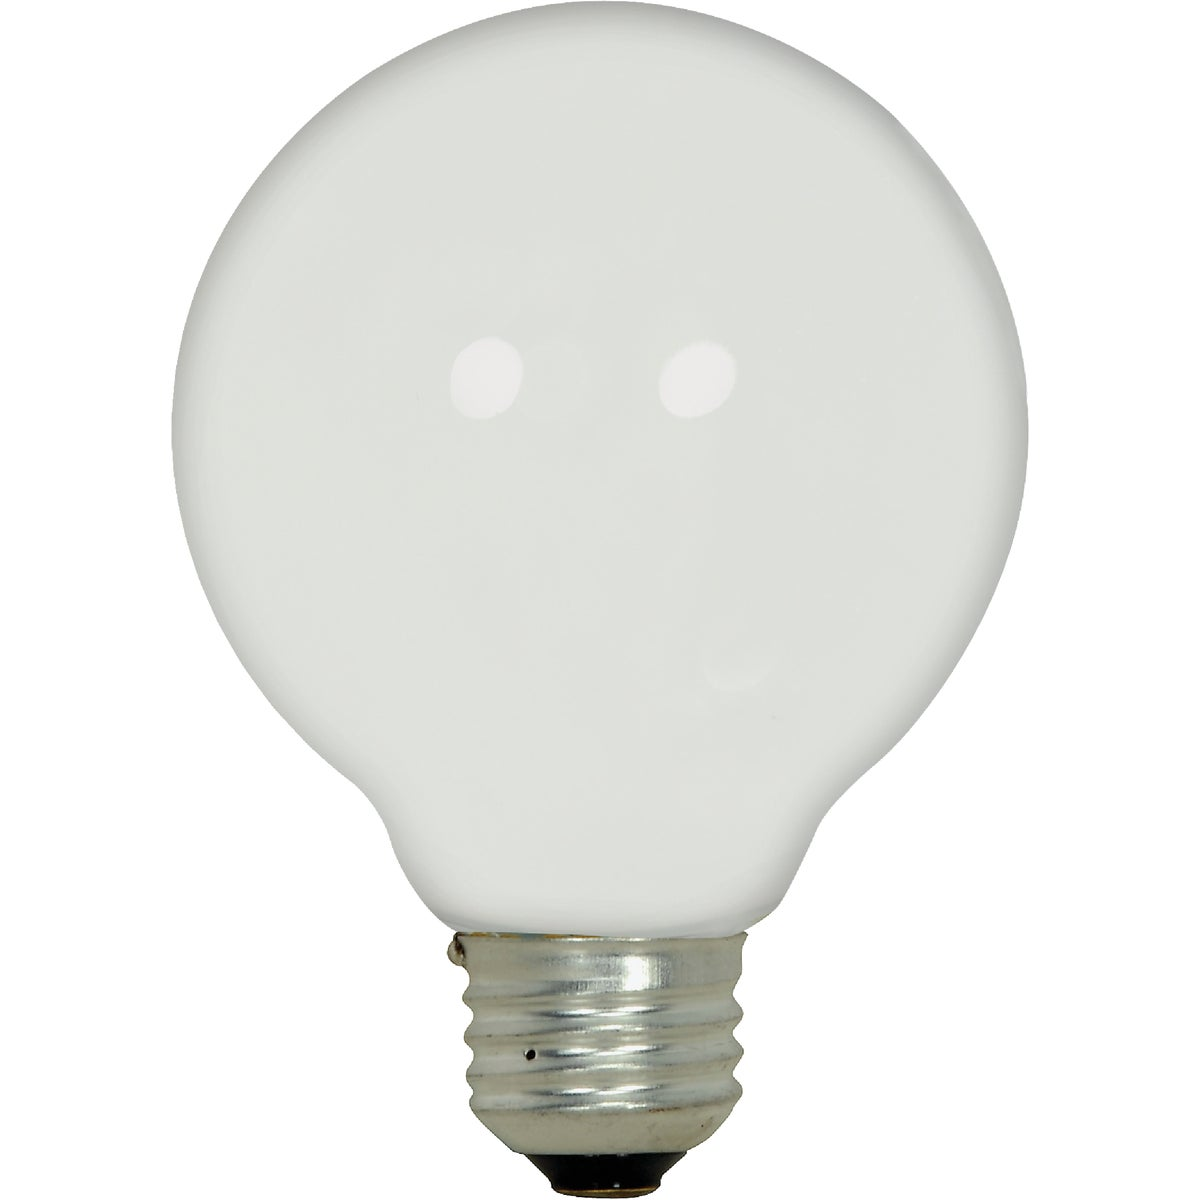 60W MEDIUM WHT BULB - 03112 by Westinghouse Lightng